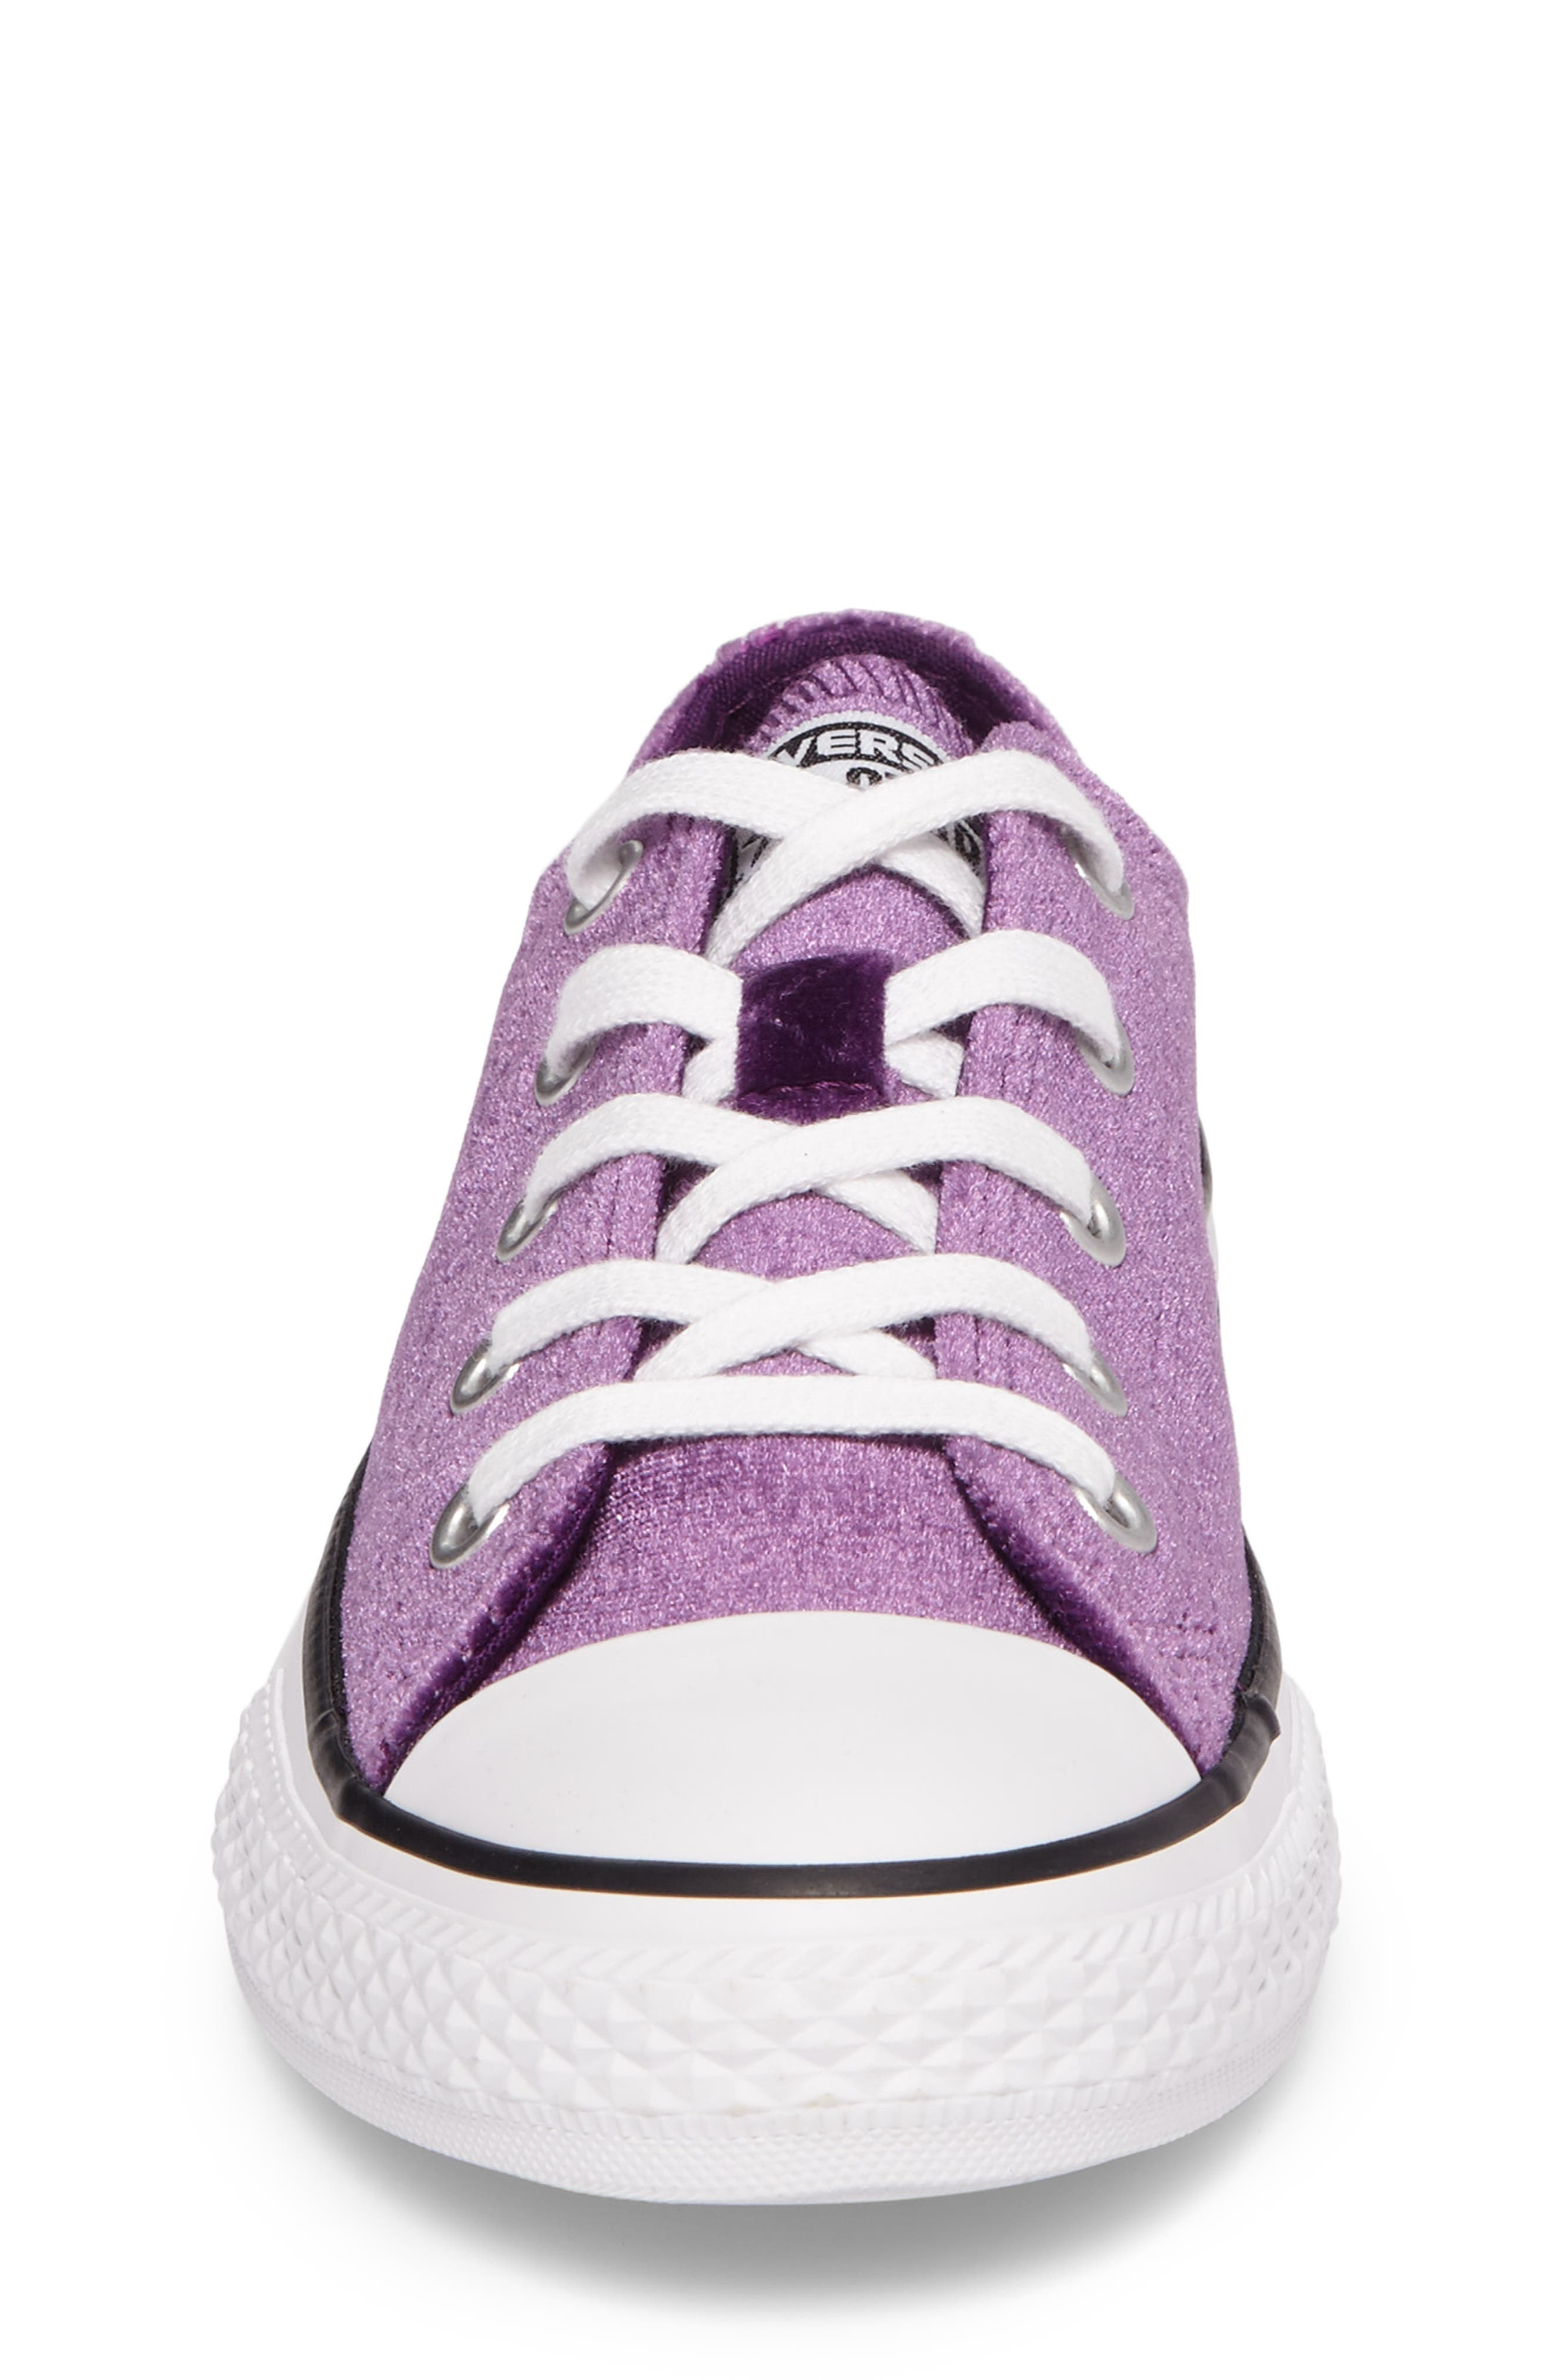 Chuck Taylor<sup>®</sup> All Star<sup>®</sup> Velvet OX Low Top Sneaker,                             Alternate thumbnail 4, color,                             500